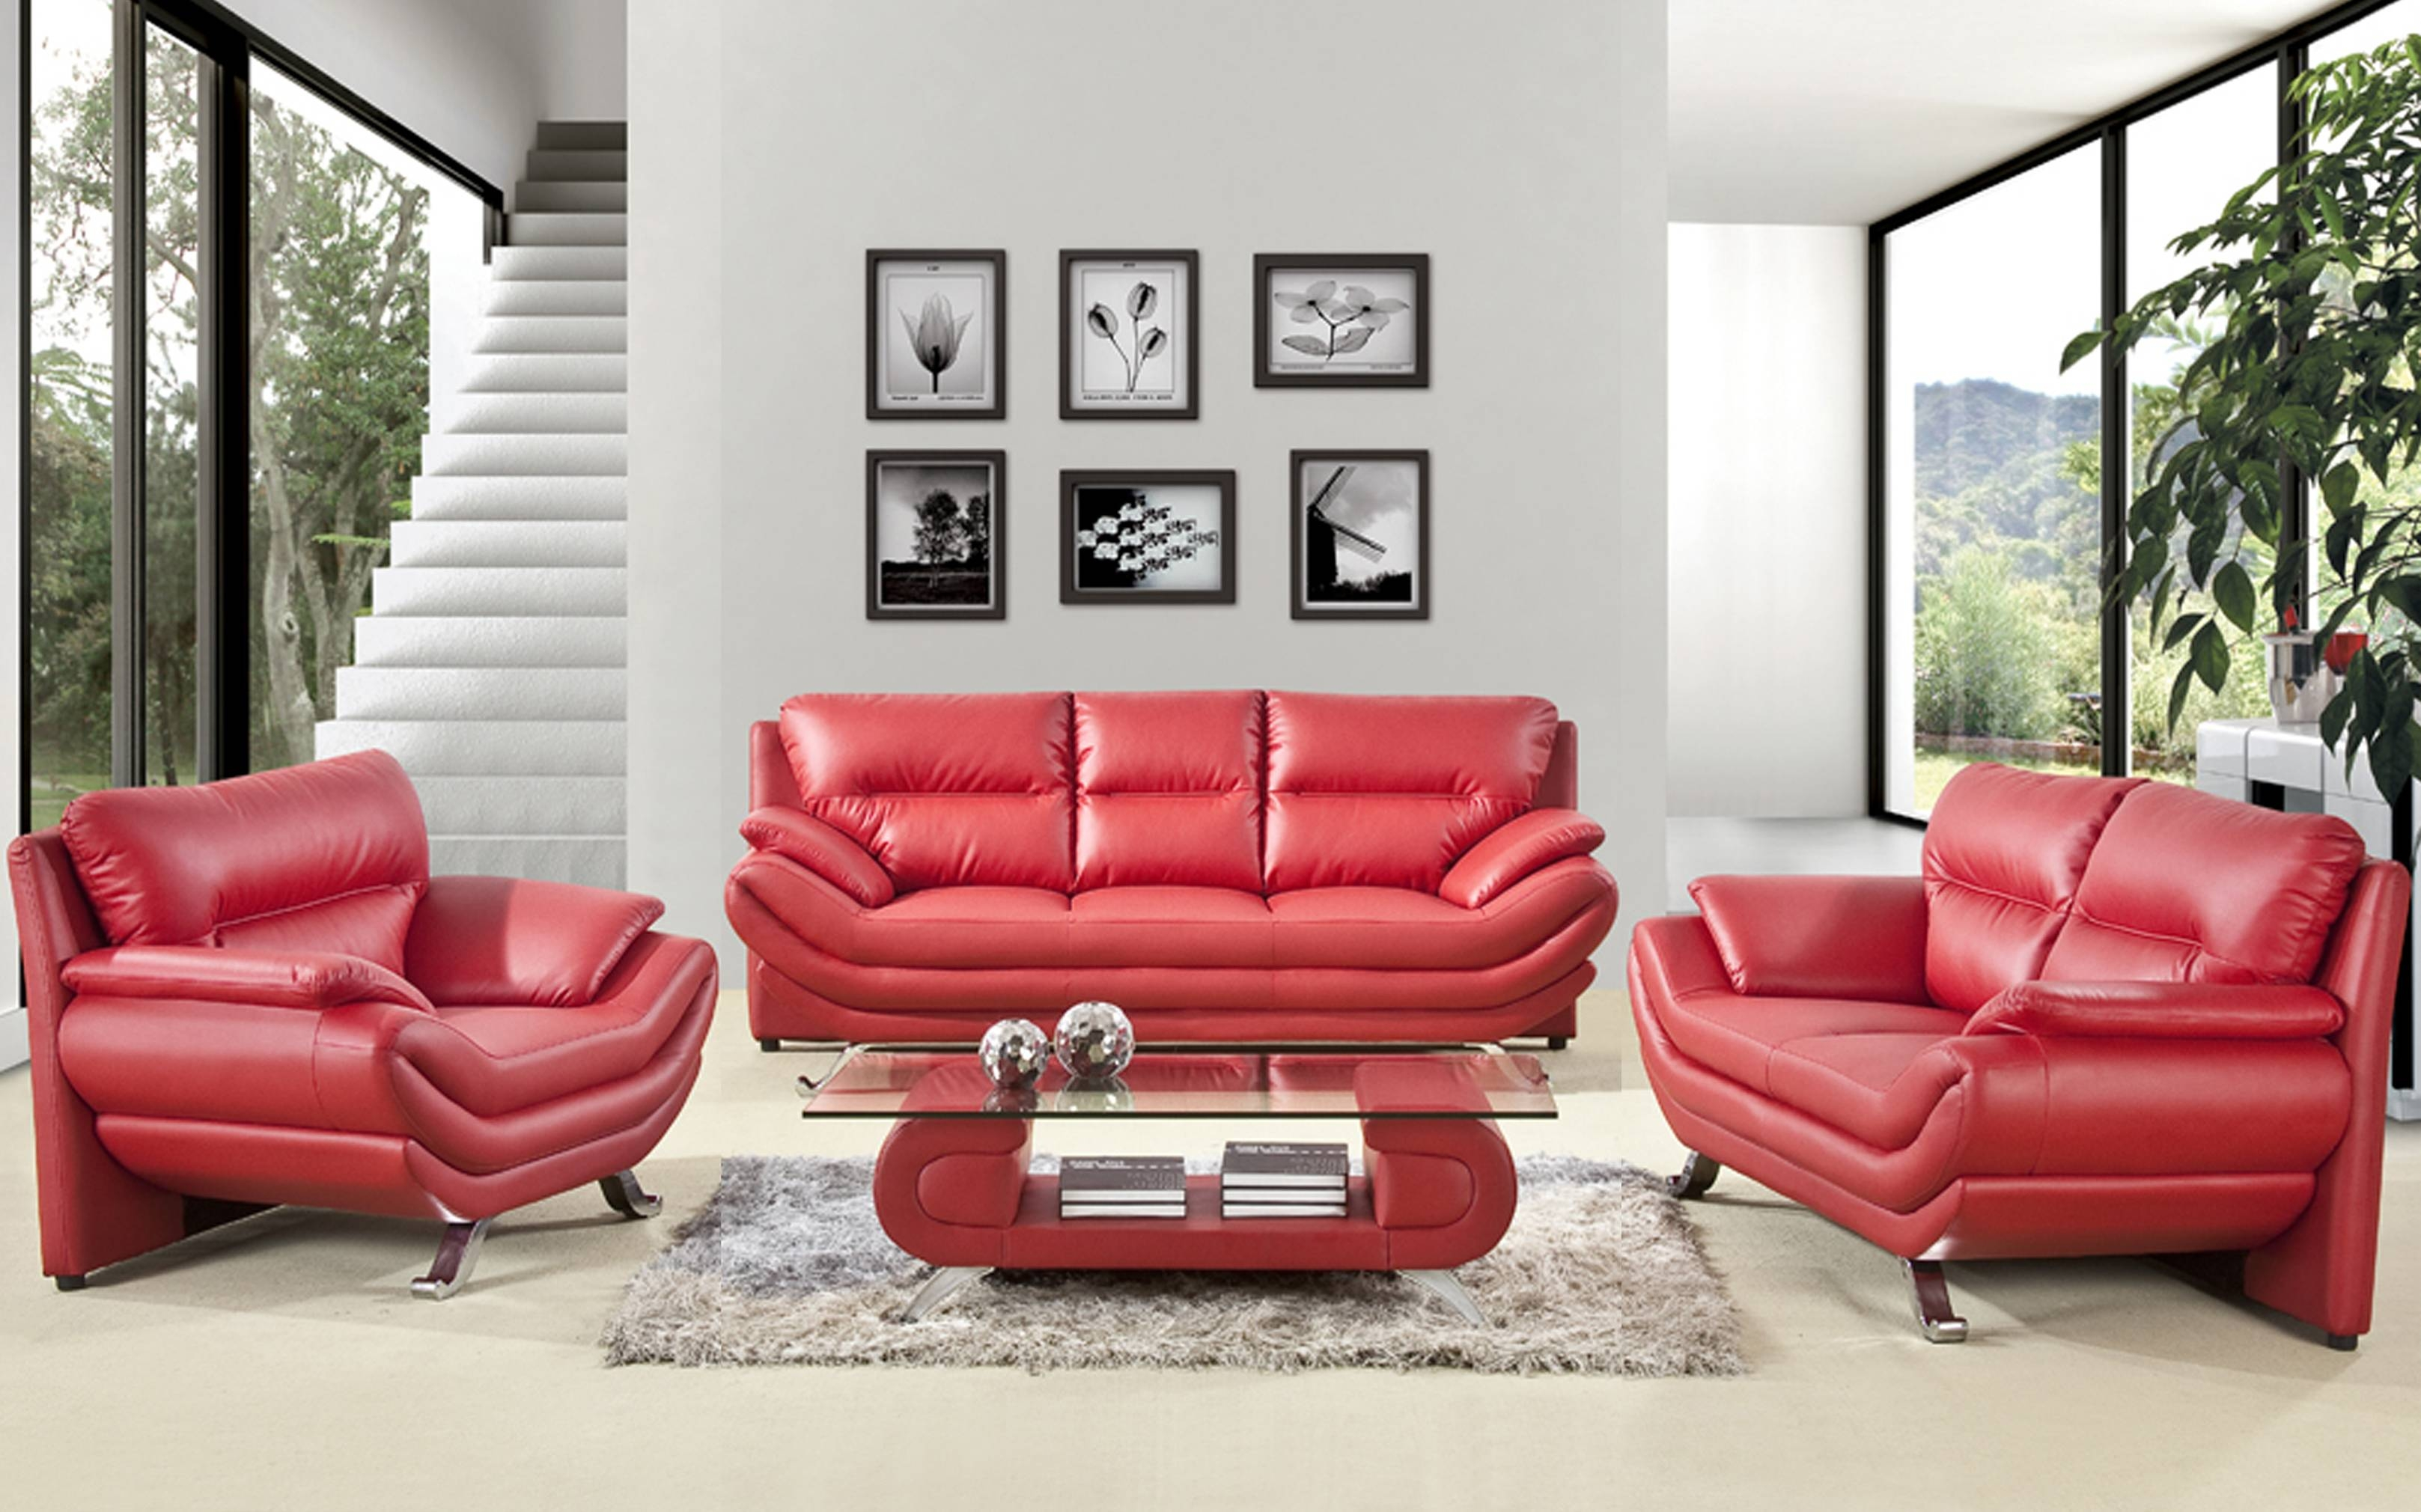 Red Living Room Set Living Room Design And Living Room Ideas throughout Red Sofas And Chairs (Image 14 of 30)